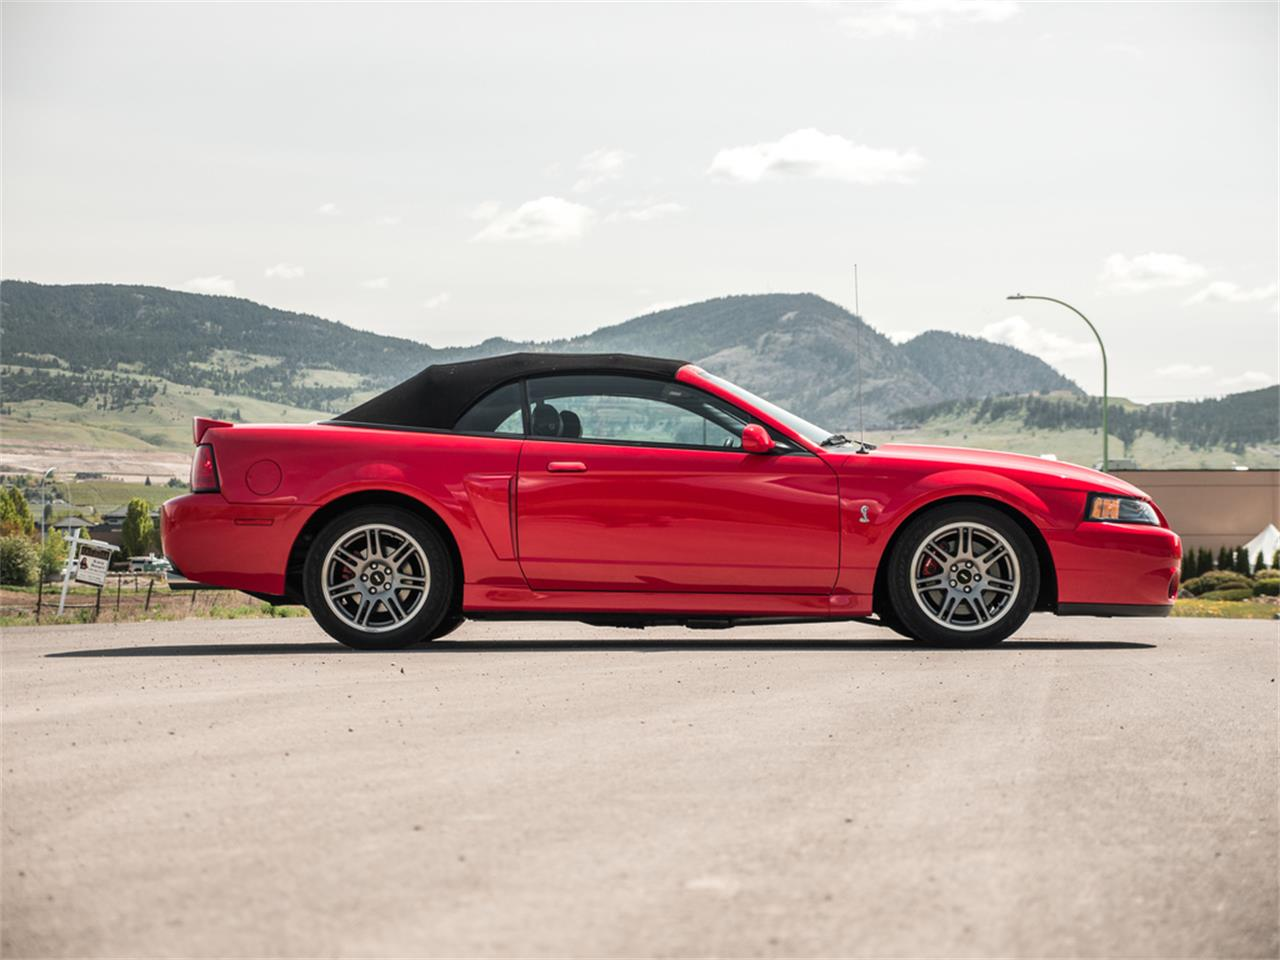 Large Picture of '03 Ford Mustang - $38,185.00 - Q9QR